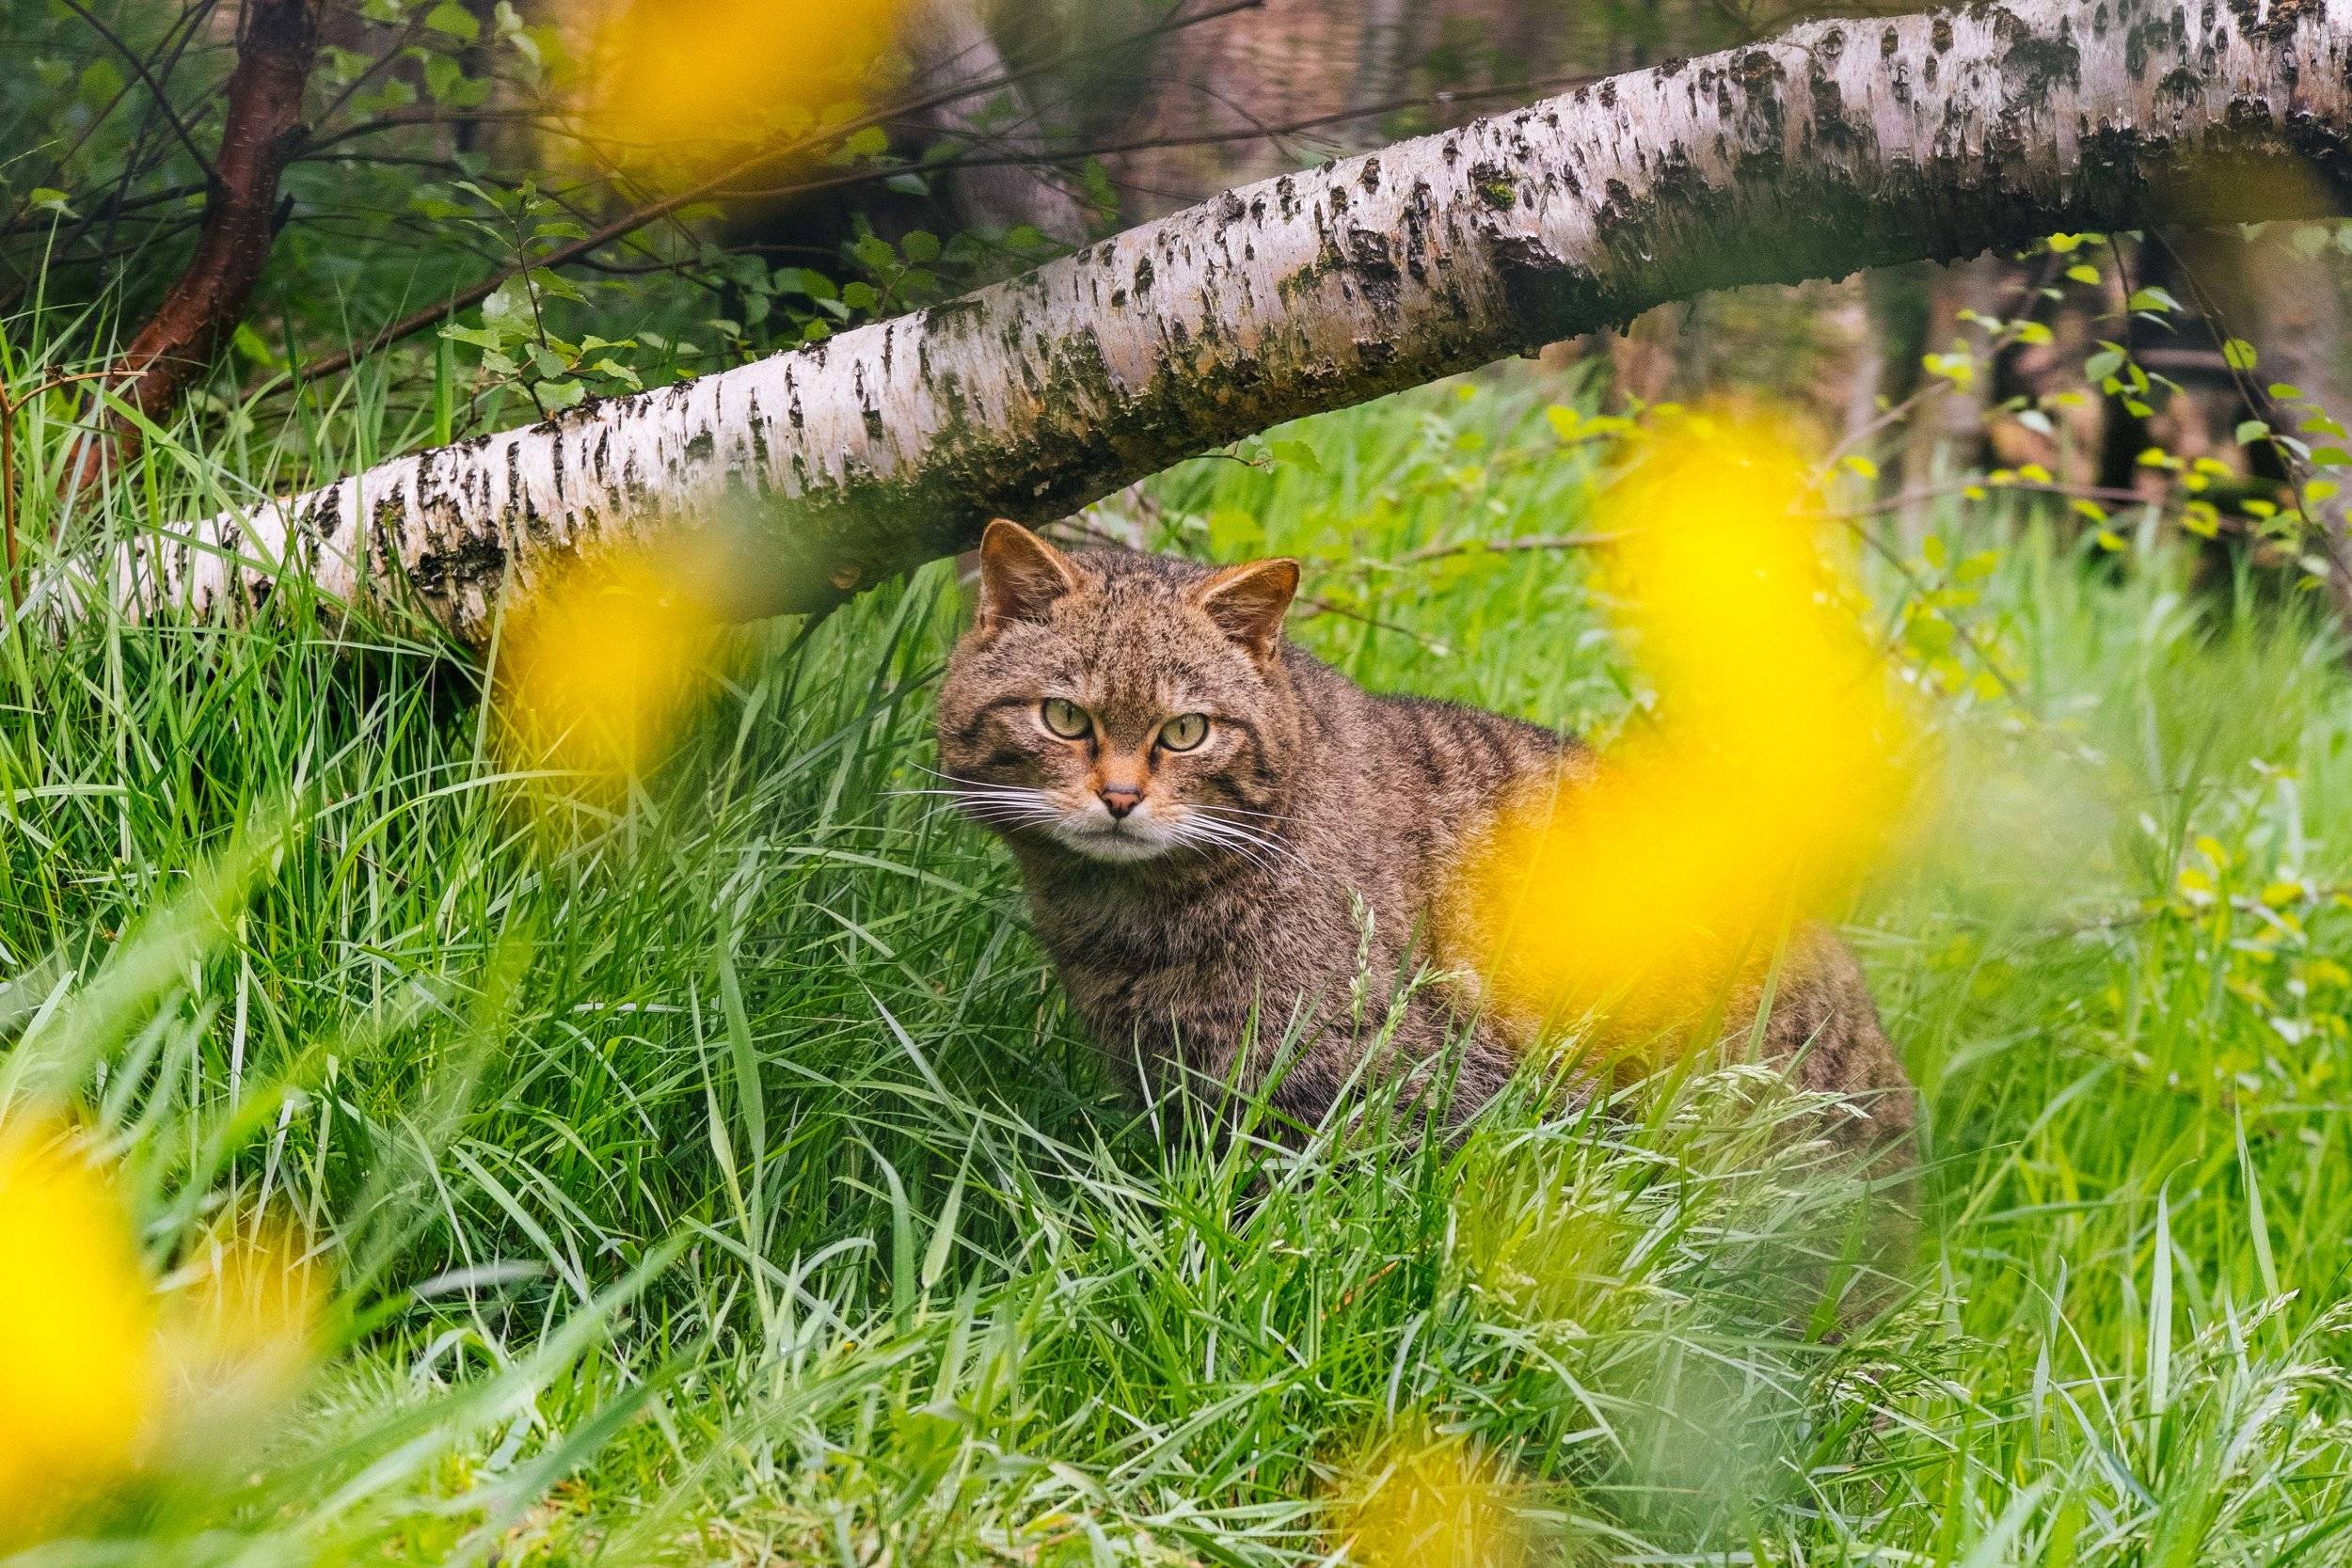 A wildcat crouches among the tall green grasses and yellow flowers